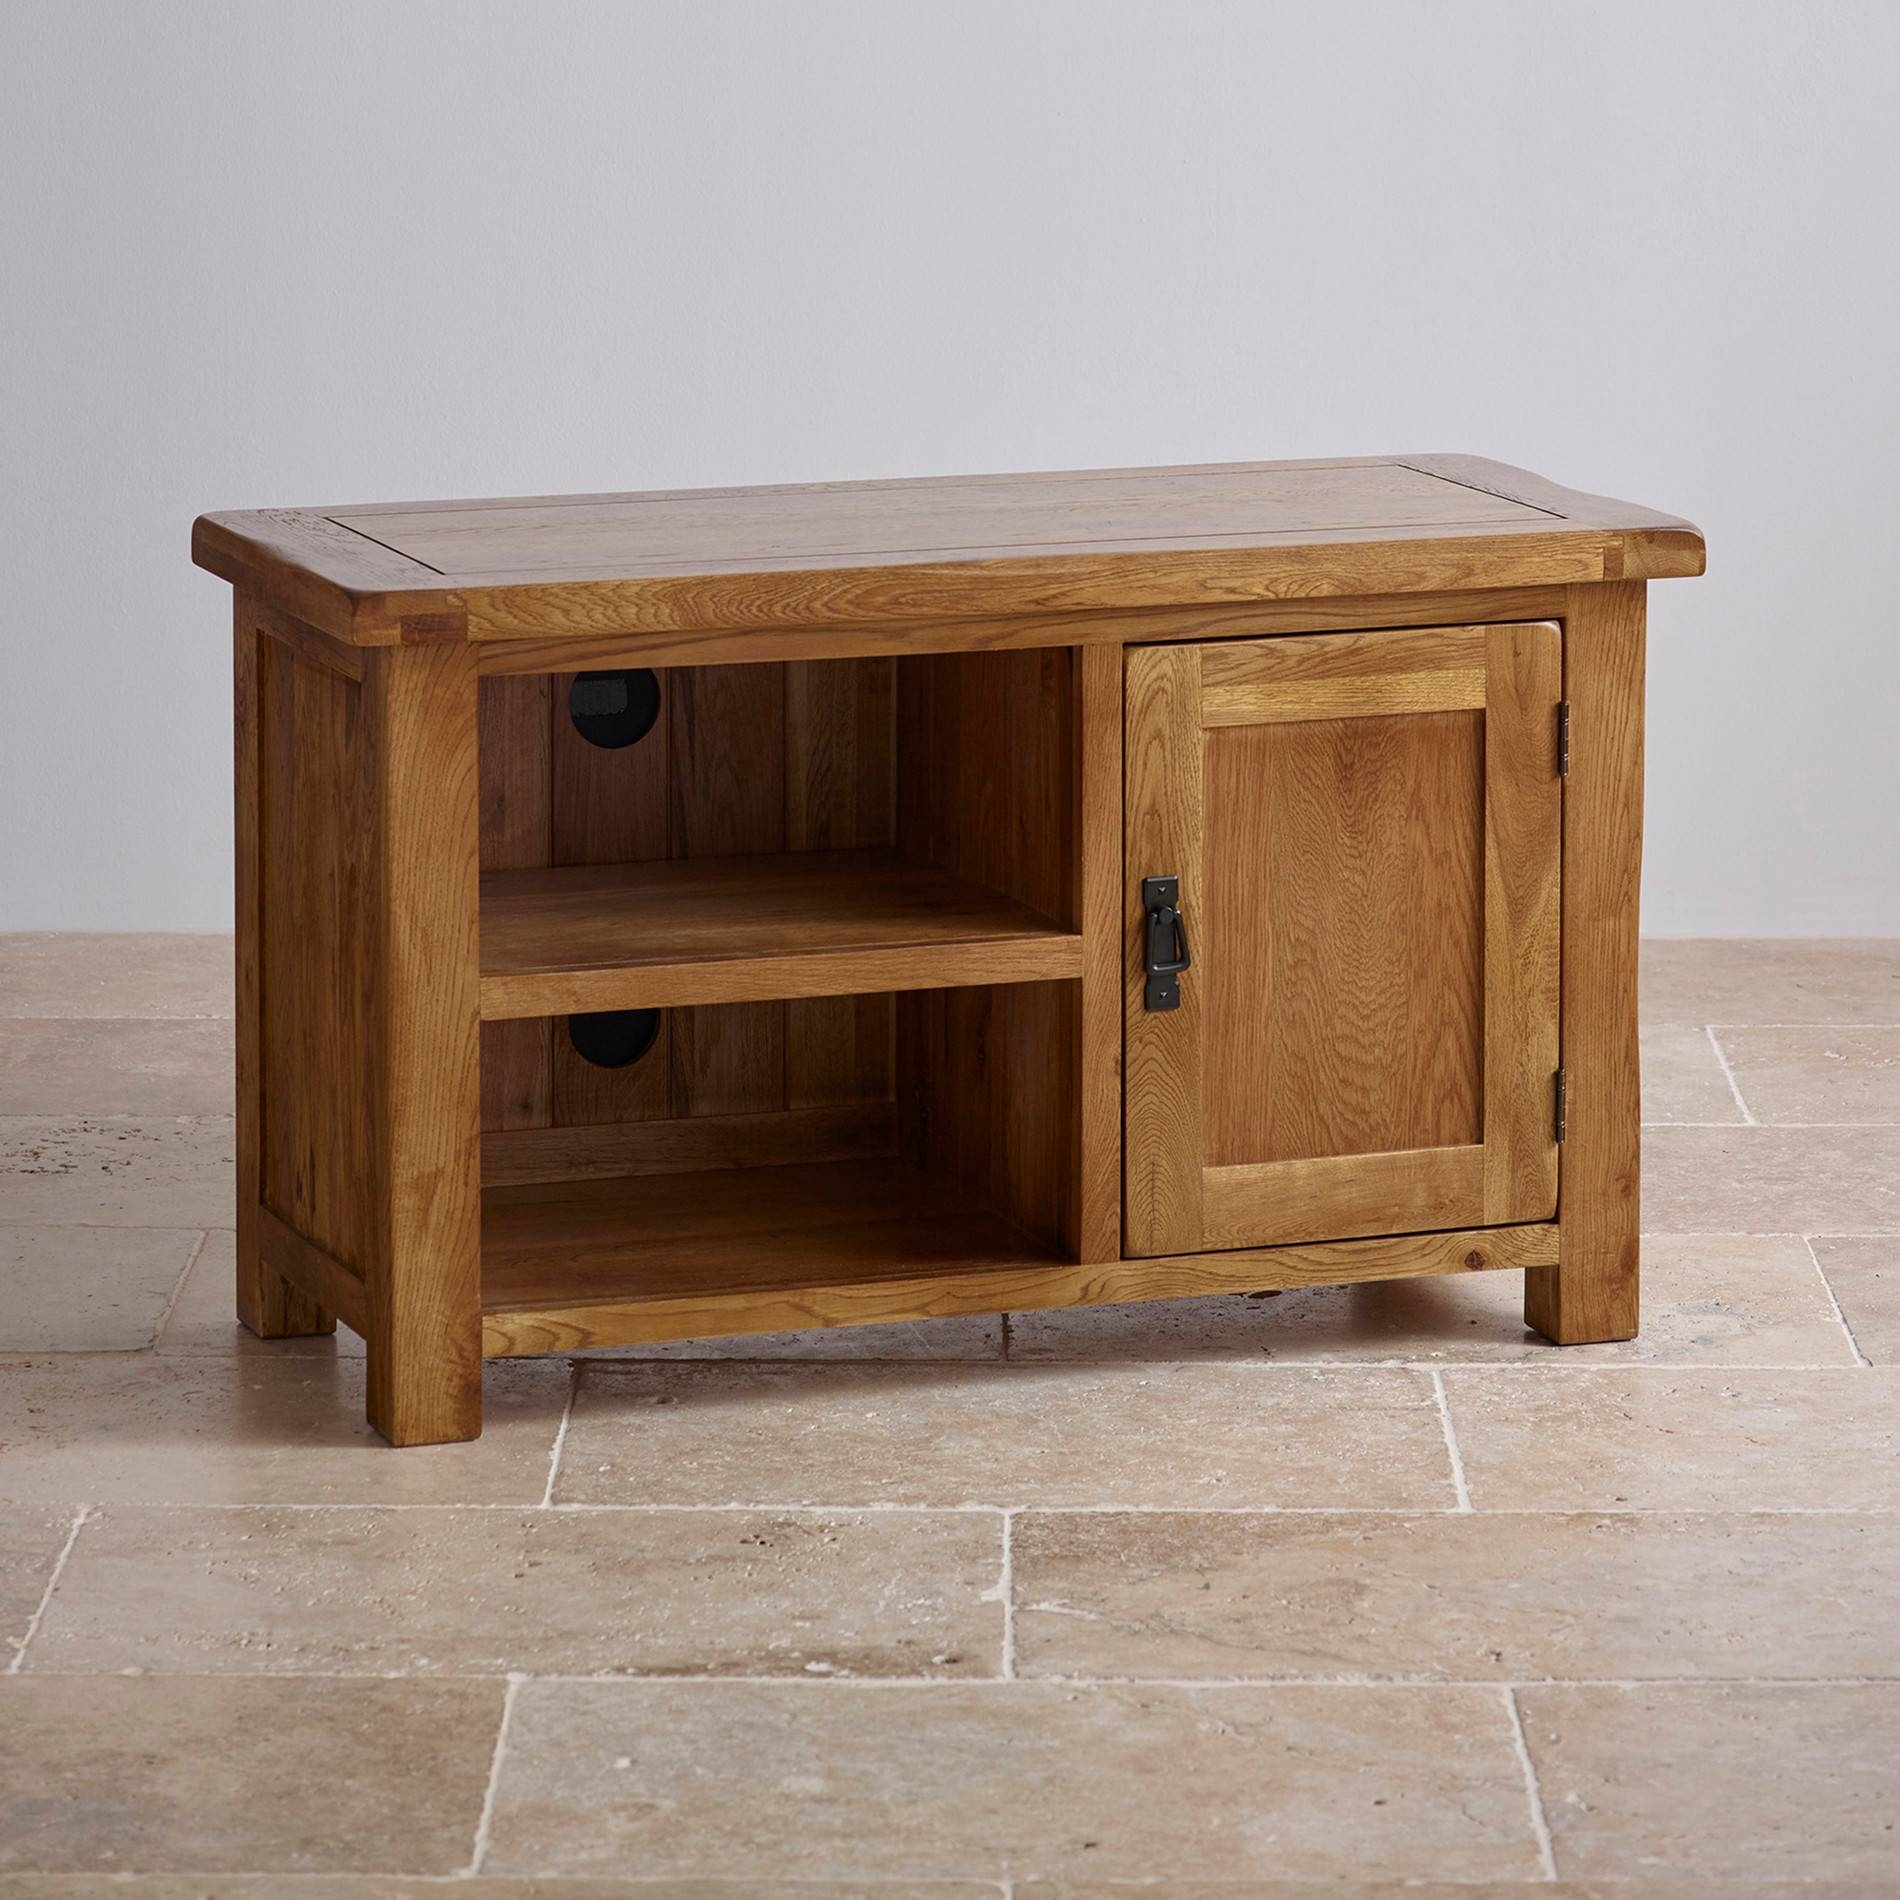 Original Rustic Tv Cabinet In Solid Oak | Oak Furniture Land for Oak Tv Cabinets With Doors (Image 8 of 15)